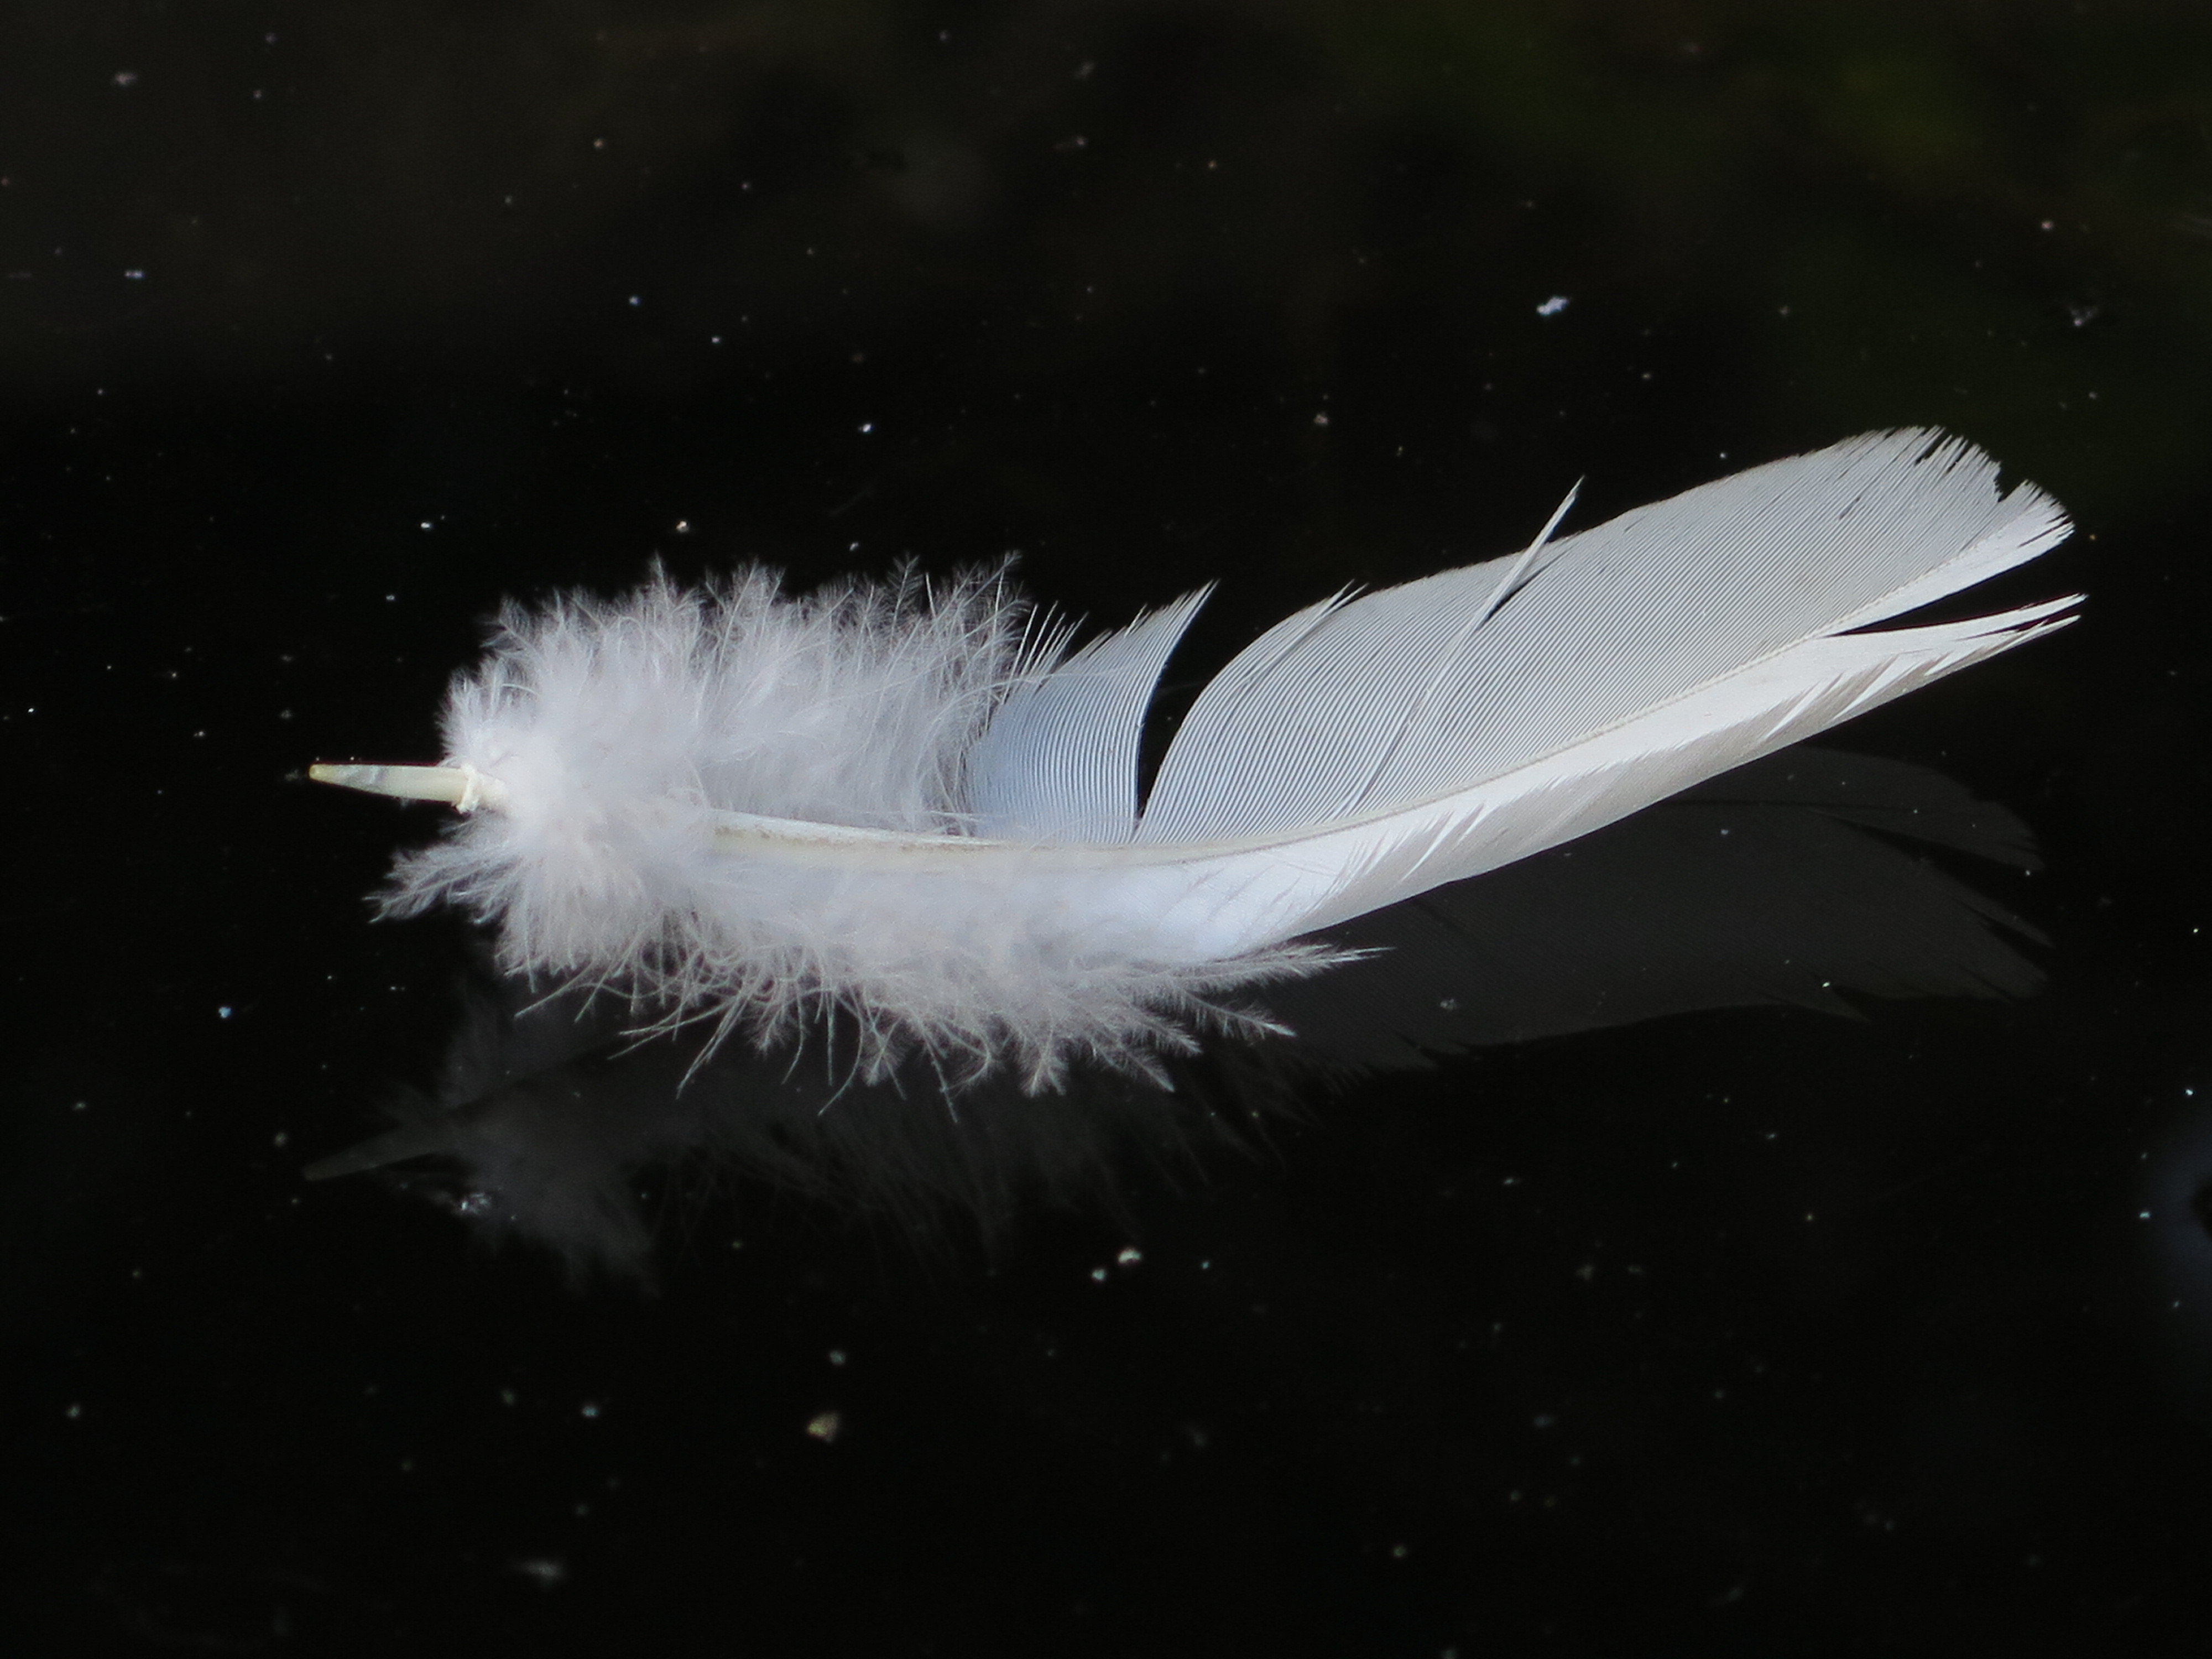 Light as a feather – 34/17